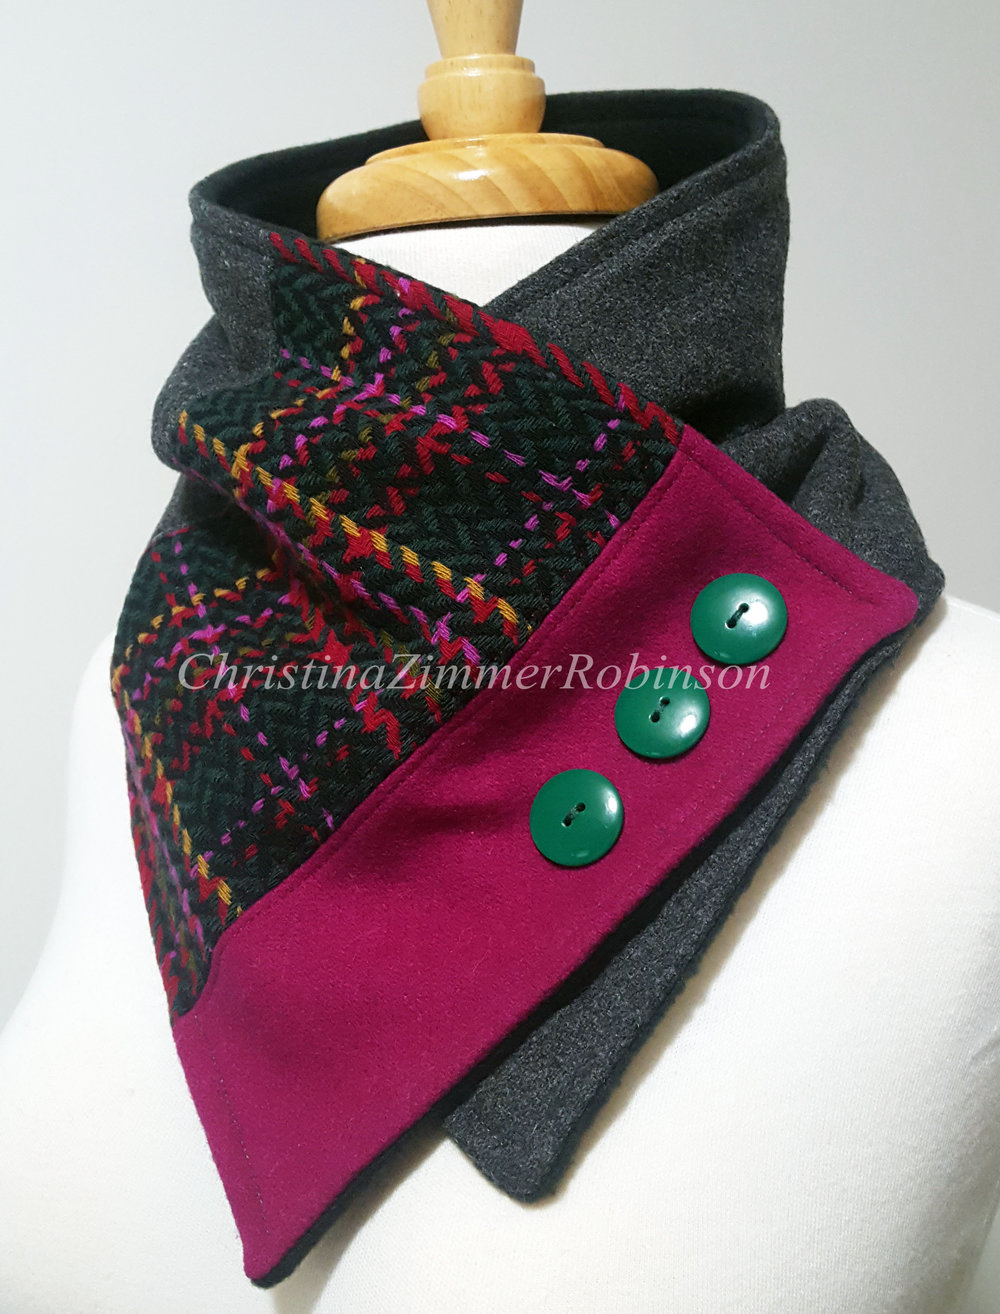 Neck Warmer, Neckwarmer, Scarf, Upcycled, Reconstructed, Fuchsia with Green Buttons